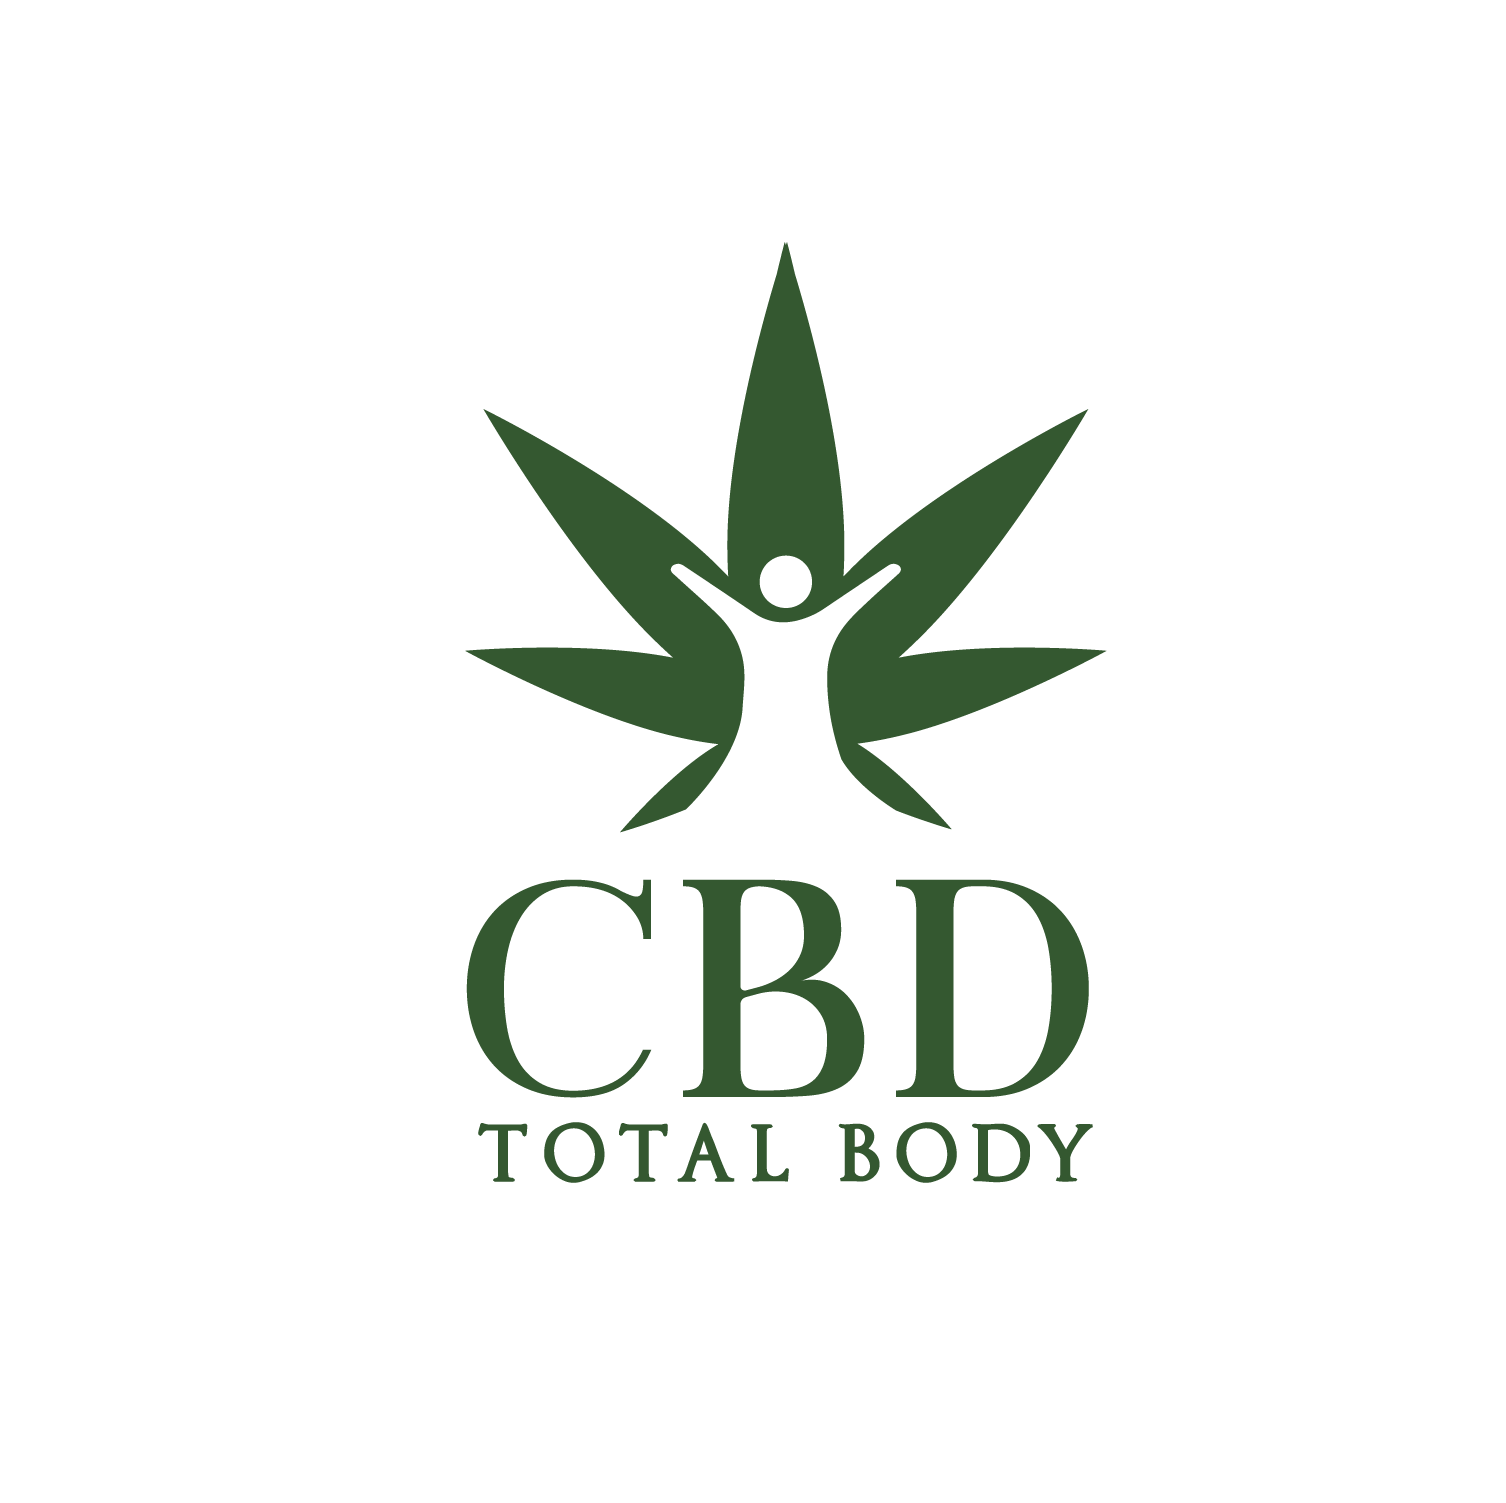 CBD Total Body Transparent Logo